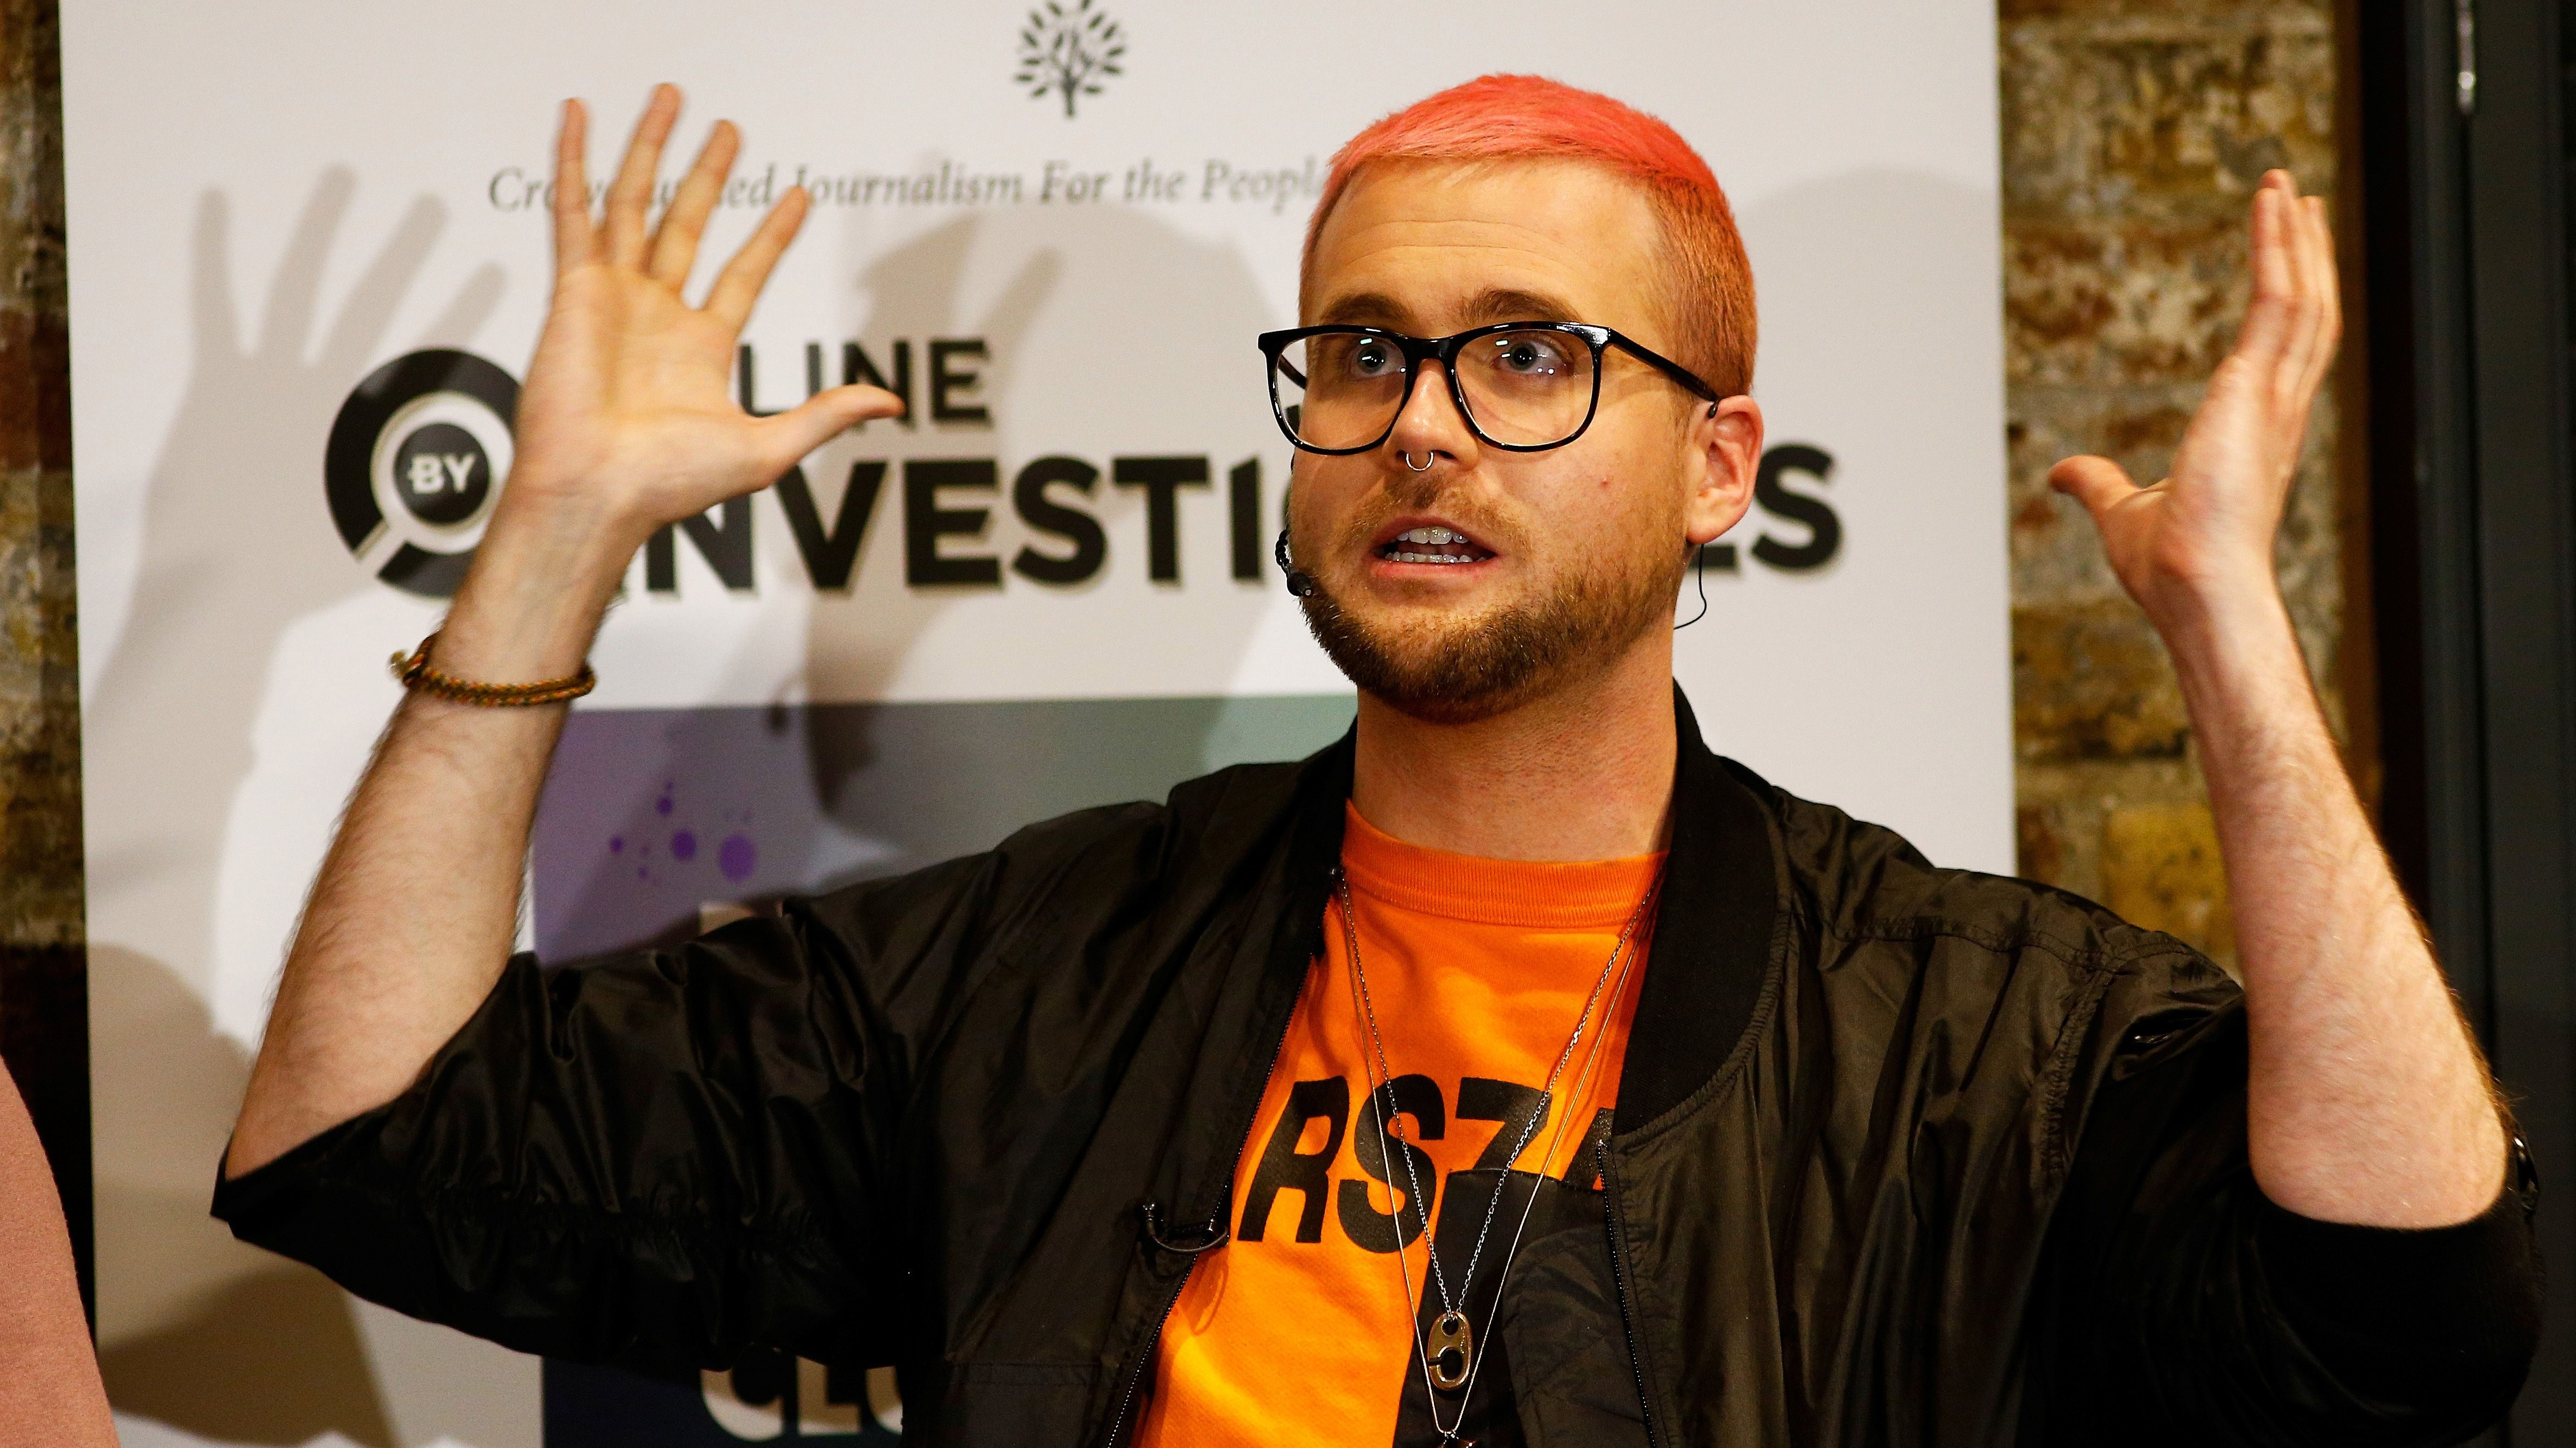 Christopher Wylie, a whistleblower who formerly worked with Cambridge Analytica, speaks next to Shahmir Sanni (not in picture), a former volunteer at Vote Leave group, at the Frontline Club in London, Britain, March 26, 2018.